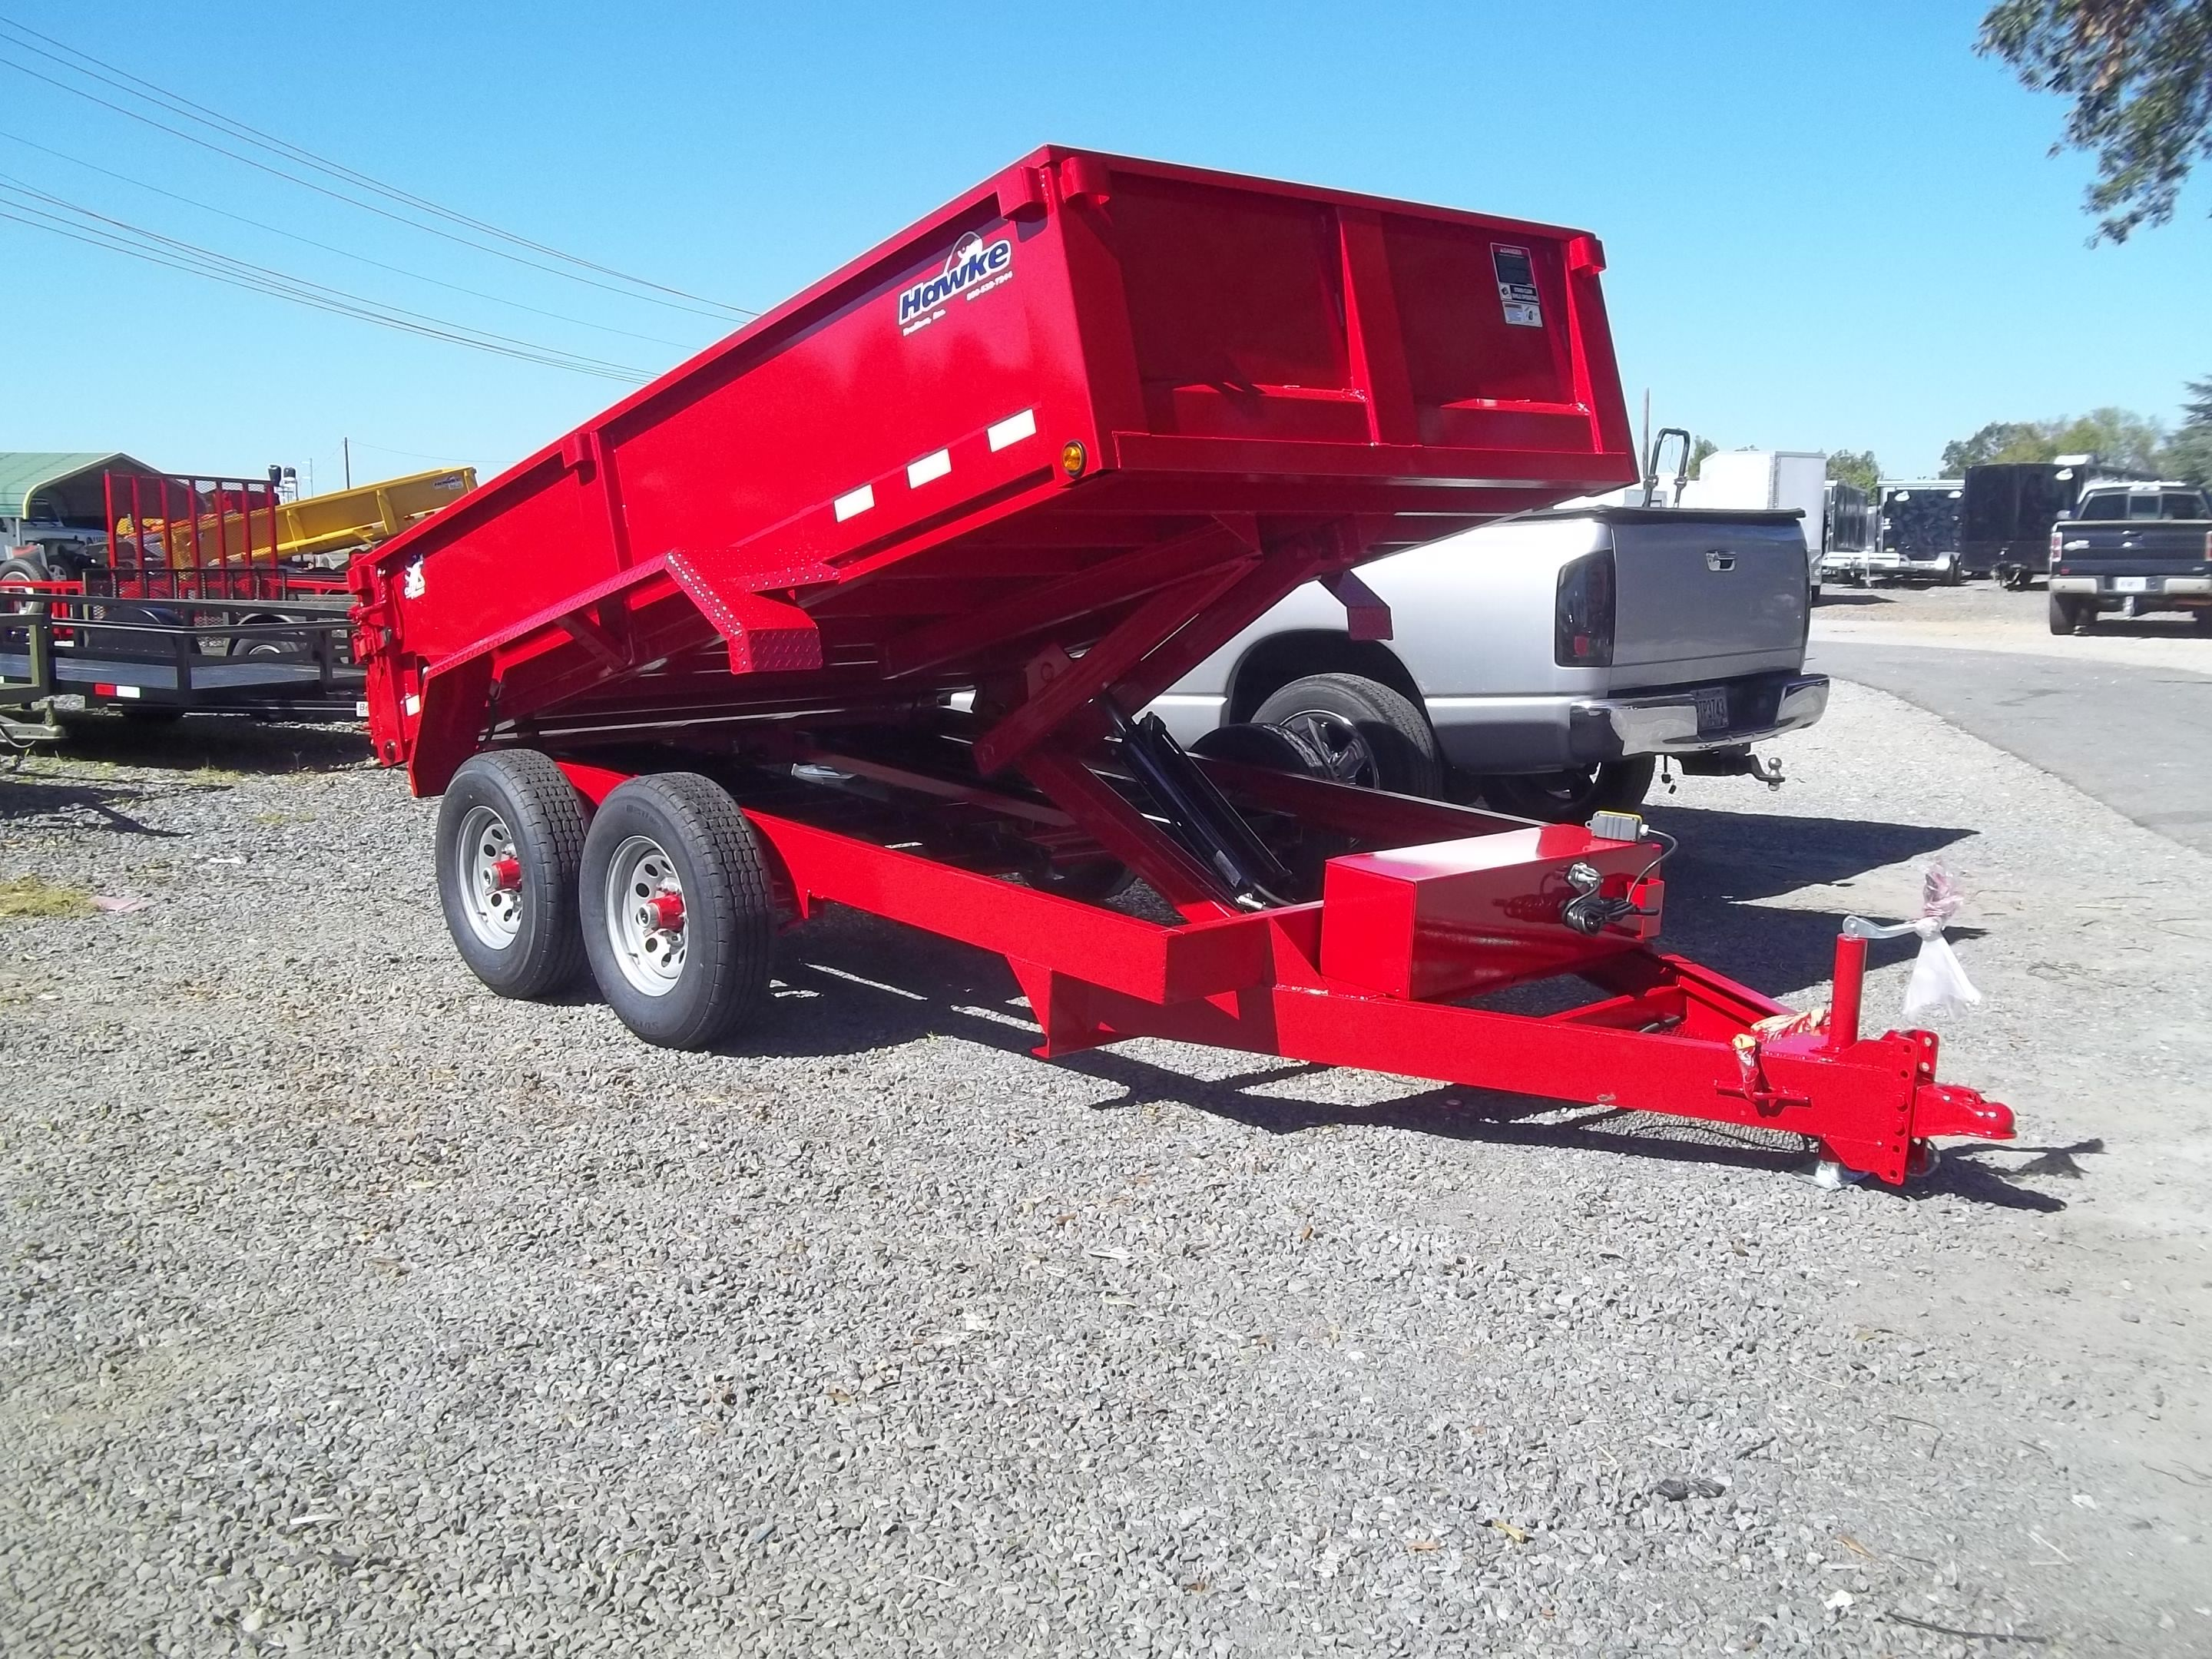 6 X 12 Dump Trailer Red Hawke Loaded 10k Gvwr By Best Trailers In